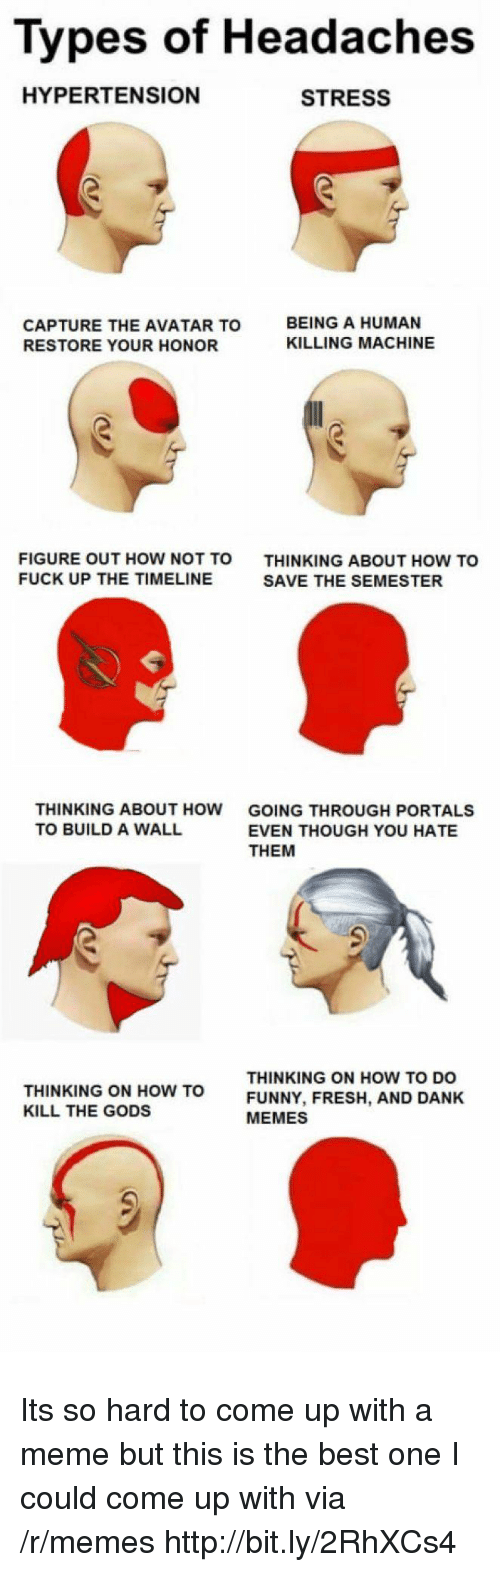 how to kill: Types of Headaches  HYPERTENSION  STRESS  CAPTURE THE AVATAR TO  RESTORE YOUR HONOR  BEING A HUMAN  KILLING MACHINE  FIGURE OUT HOW NOT TO  FUCK UP THE TIMELINE  THINKING ABOUT HOW TO  SAVE THE SEMESTER  THINKING ABOUT HOW  TO BUILD A WALL  GOING THROUGH PORTALS  EVEN THOUGH YOU HATE  THEM  THINKING ON HOW TO  KILL THE GODS  THINKING ON HOW TO DO  FUNNY, FRESH, AND DANK  MEMES Its so hard to come up with a meme but this is the best one I could come up with via /r/memes http://bit.ly/2RhXCs4